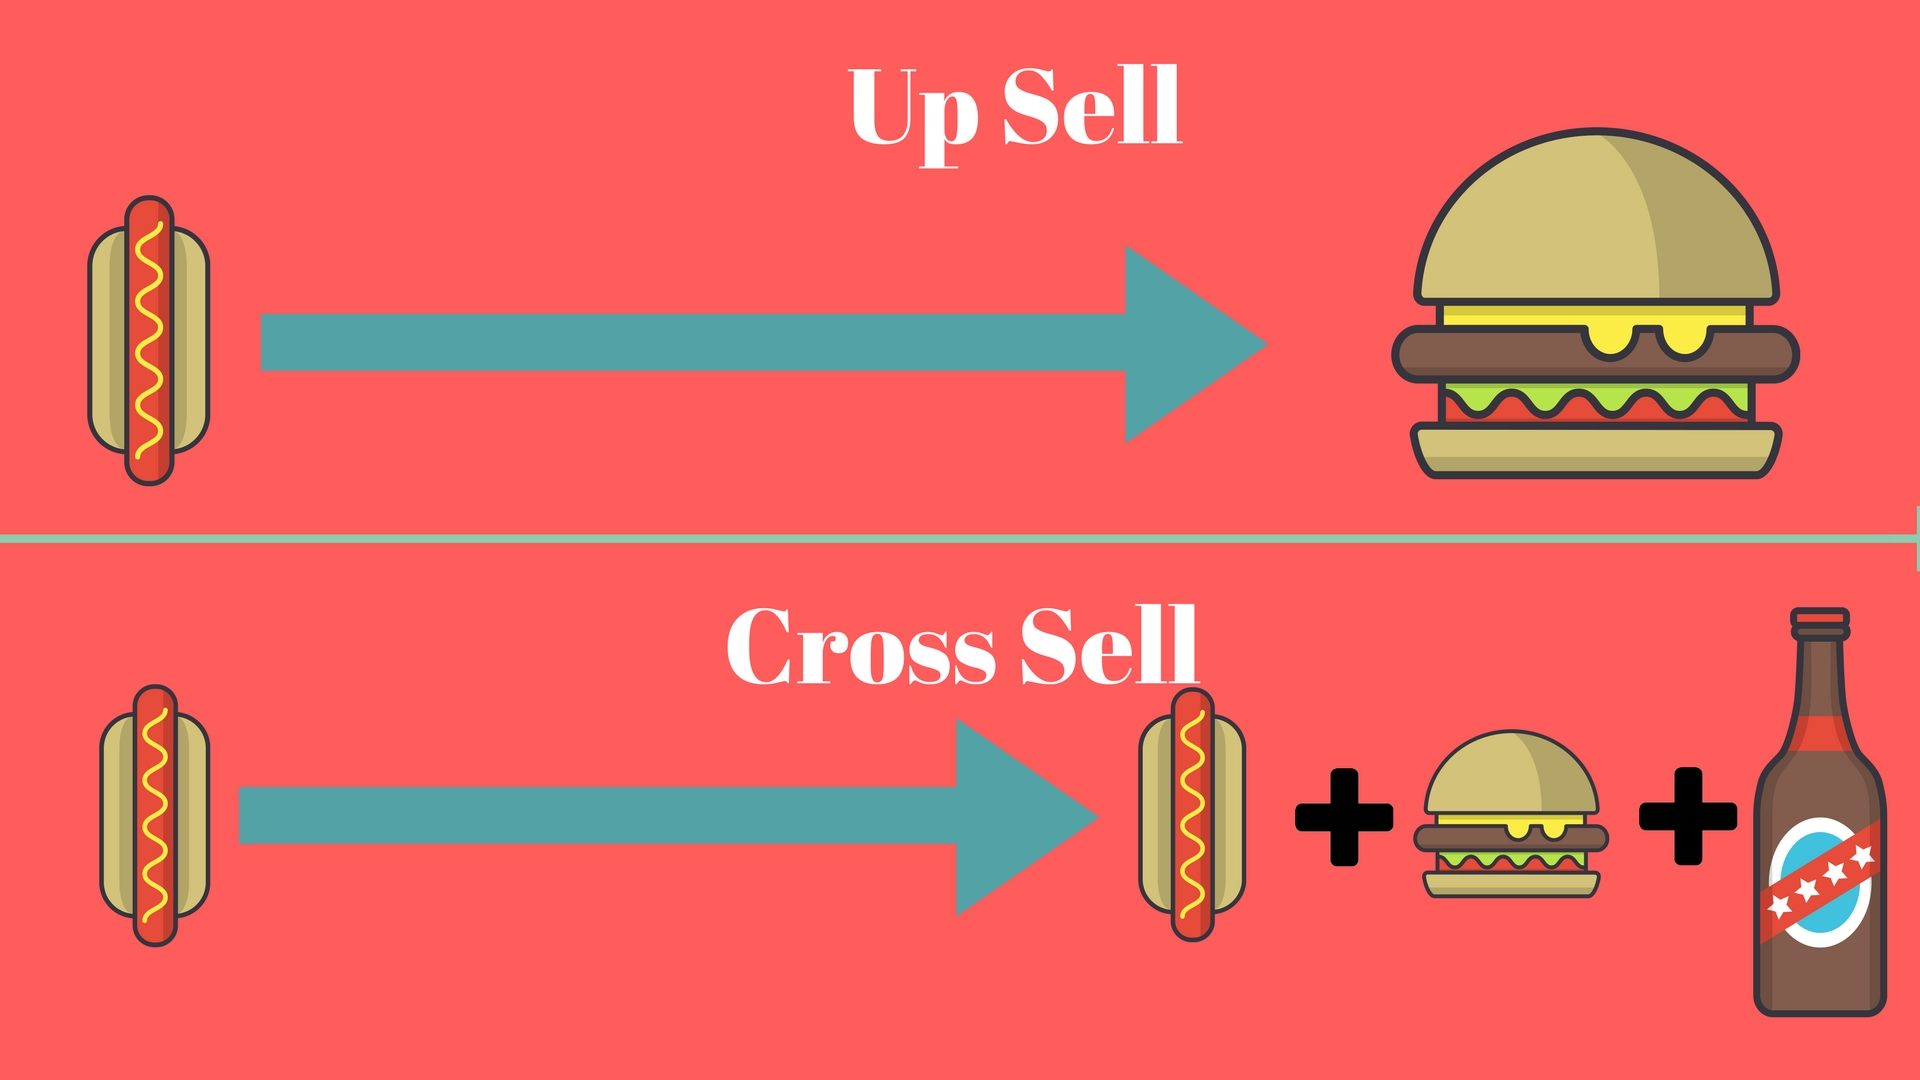 Ecommerce marketing ideas : Up Sell And cross sell